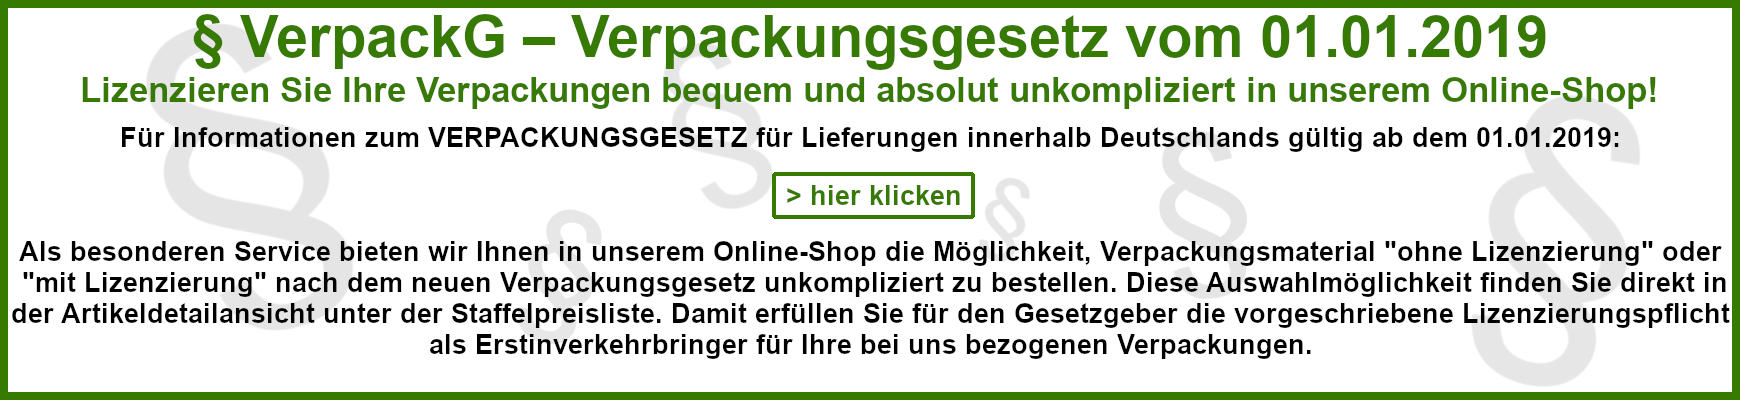 CC_Verpackungsgesetz_COMMERCIAL